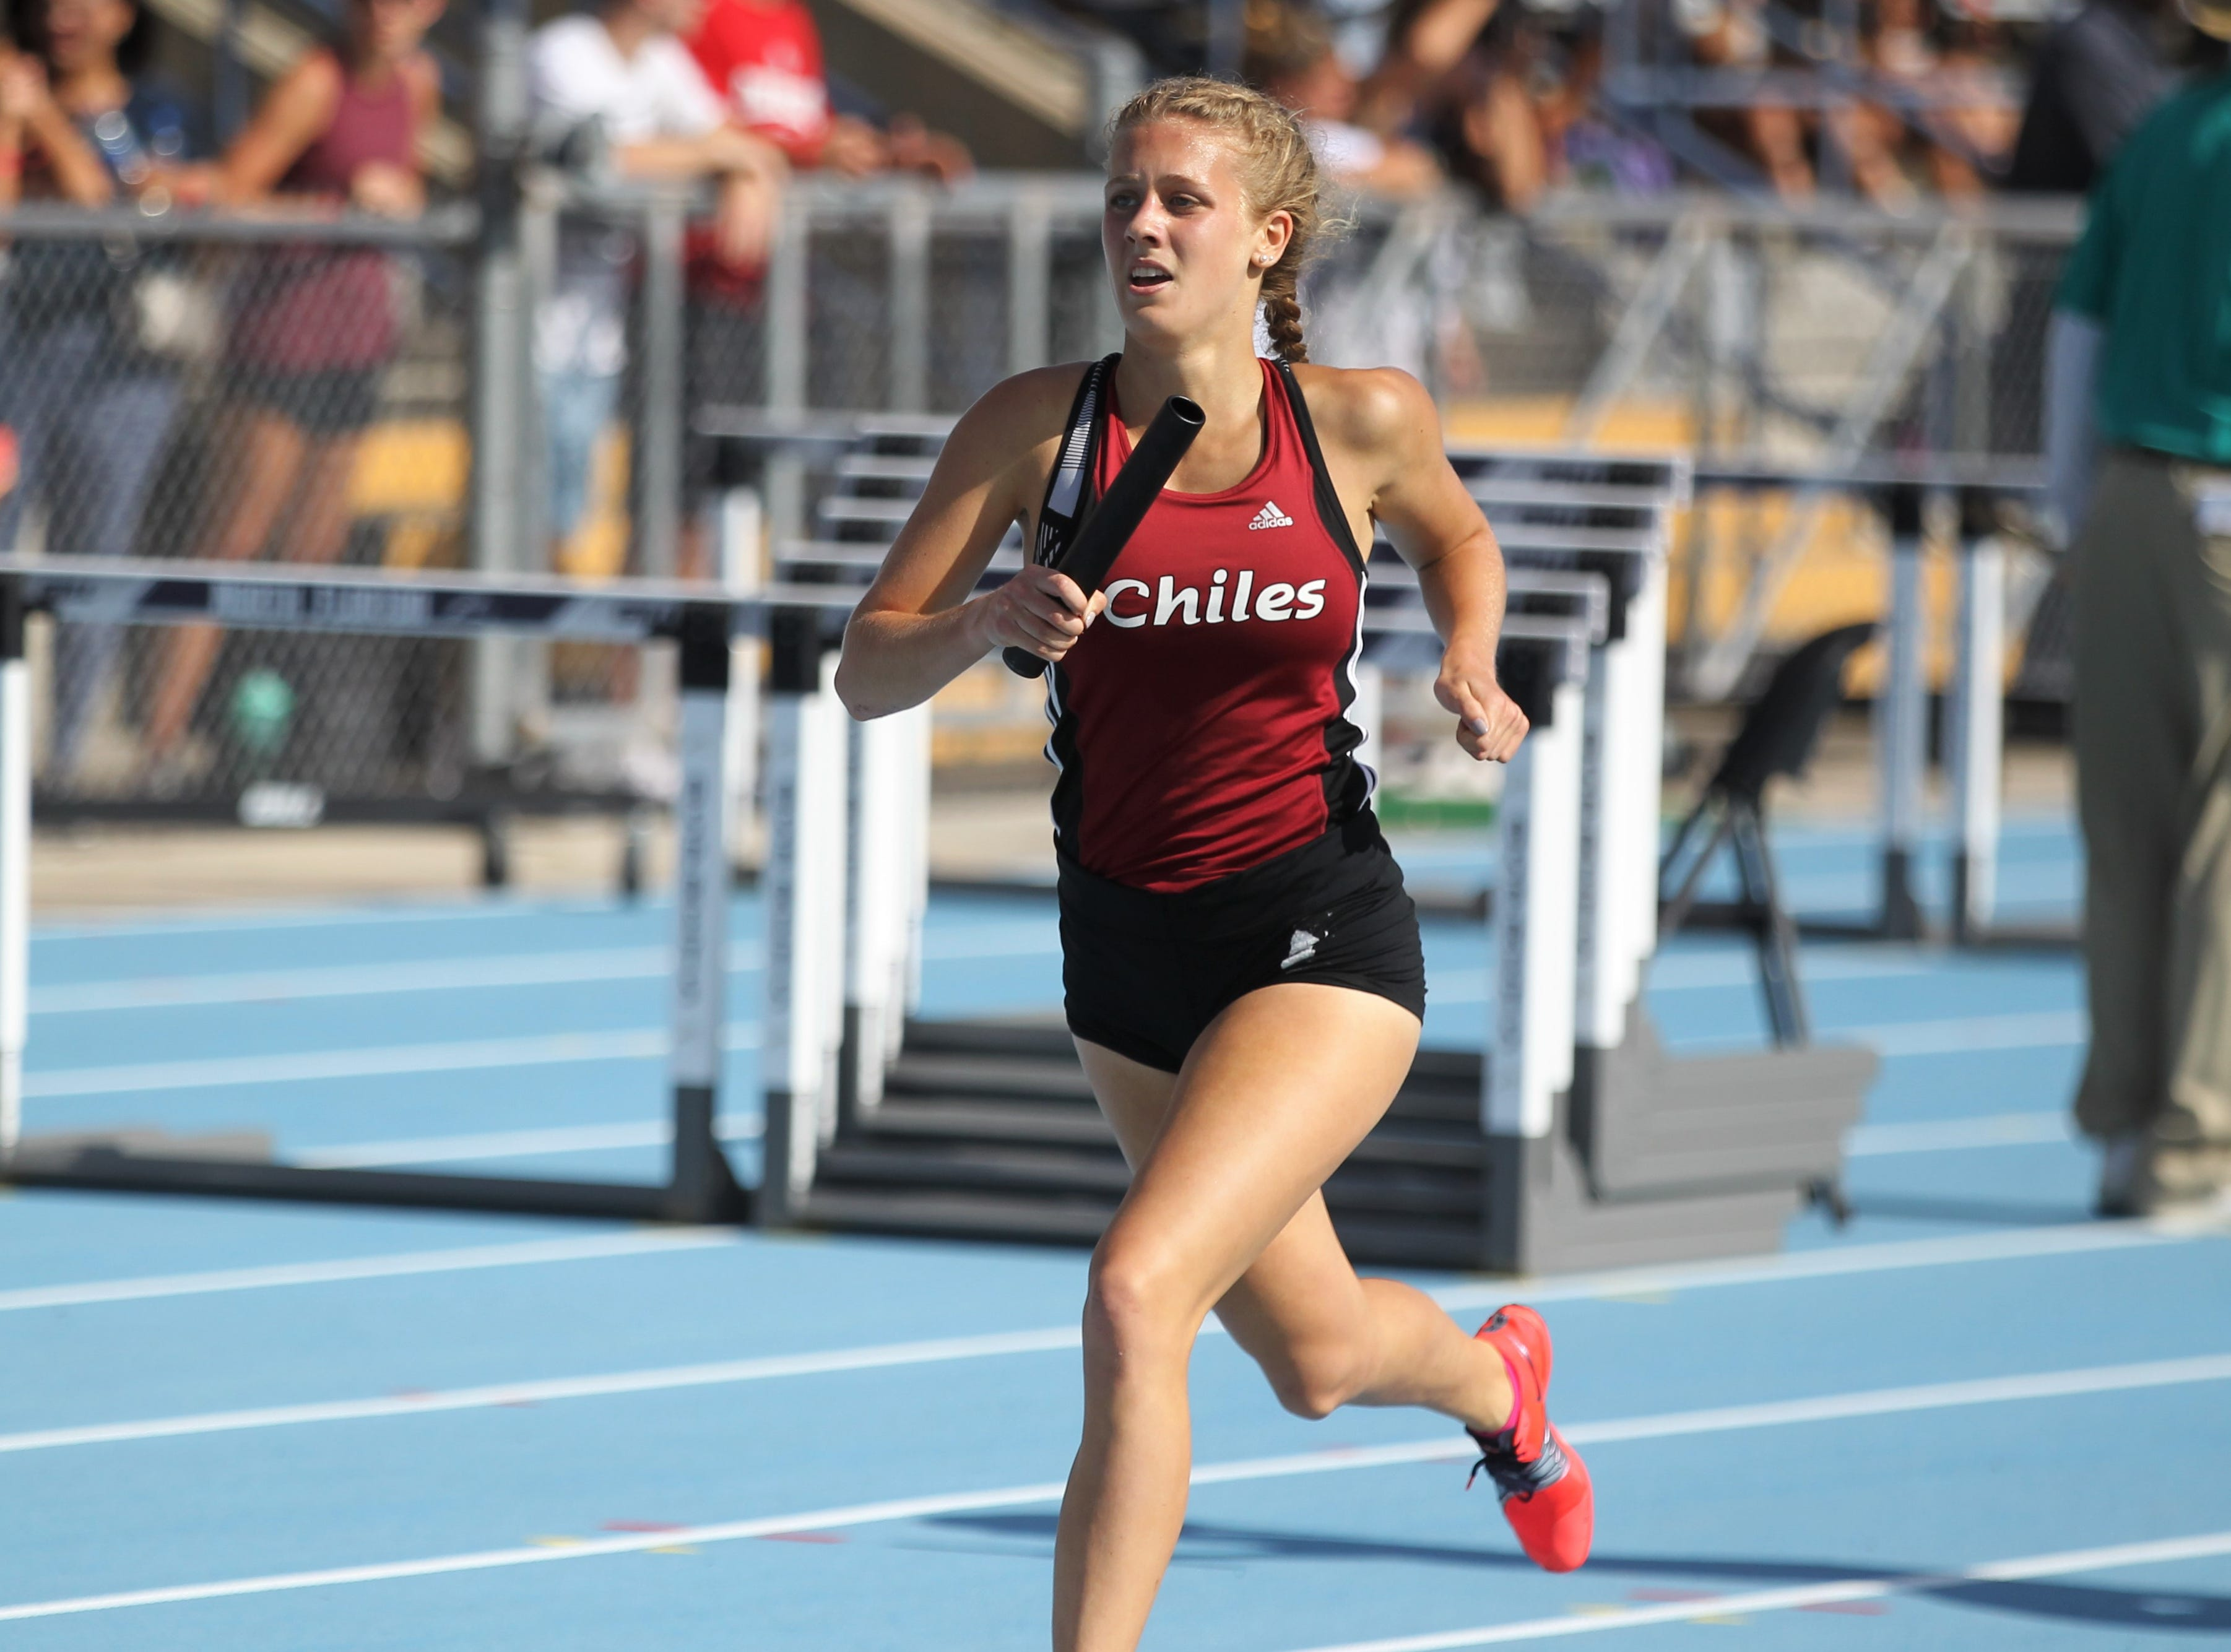 Chiles junior Caitlin Wilkey runs the lead-off leg as Chiles' girls 4x800 relay captured gold in Florida's fourth-best time ever during the FHSAA Track & Field State Championships at UNF's Hodges Stadium in Jacksonville on May 4, 2019.